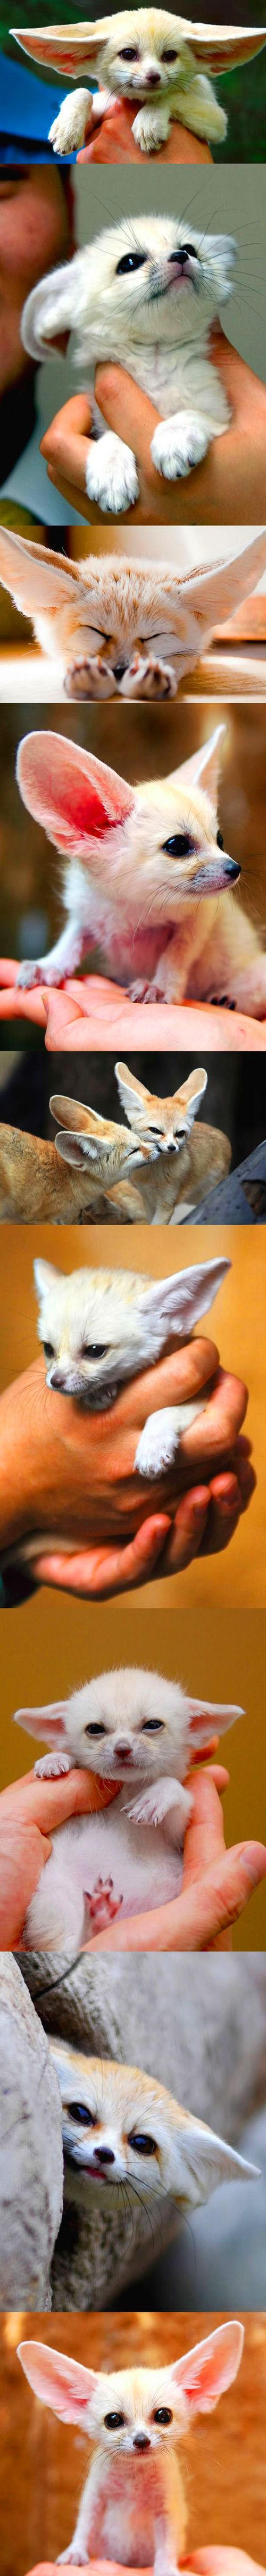 Fennec Fox Pups.